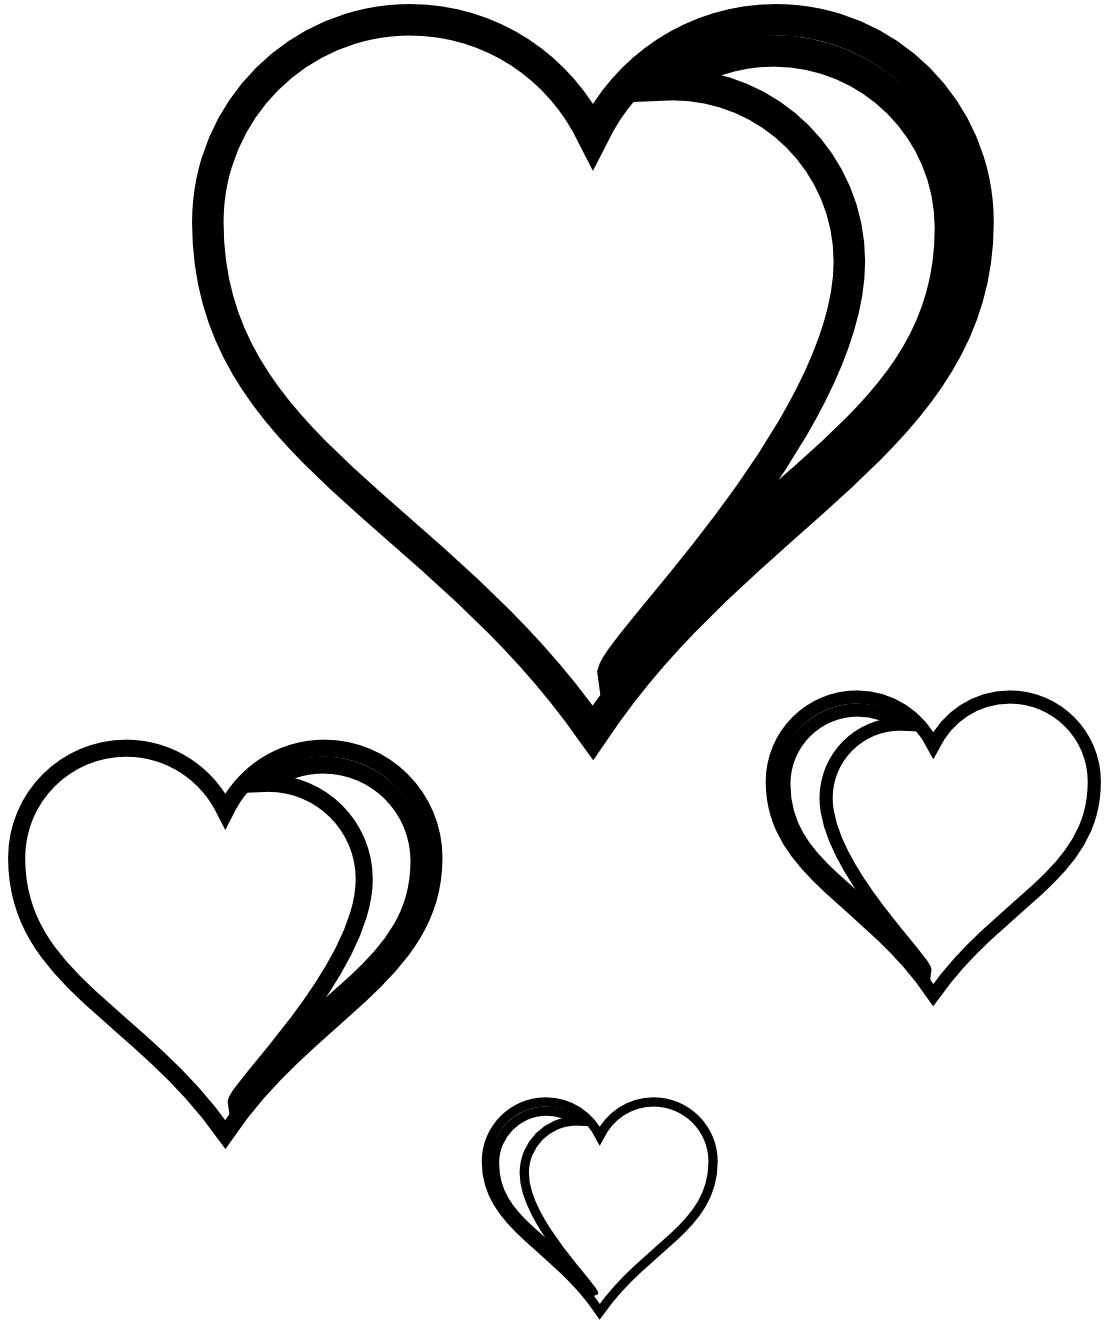 Heart Clip Art Black And White Clipart Panda